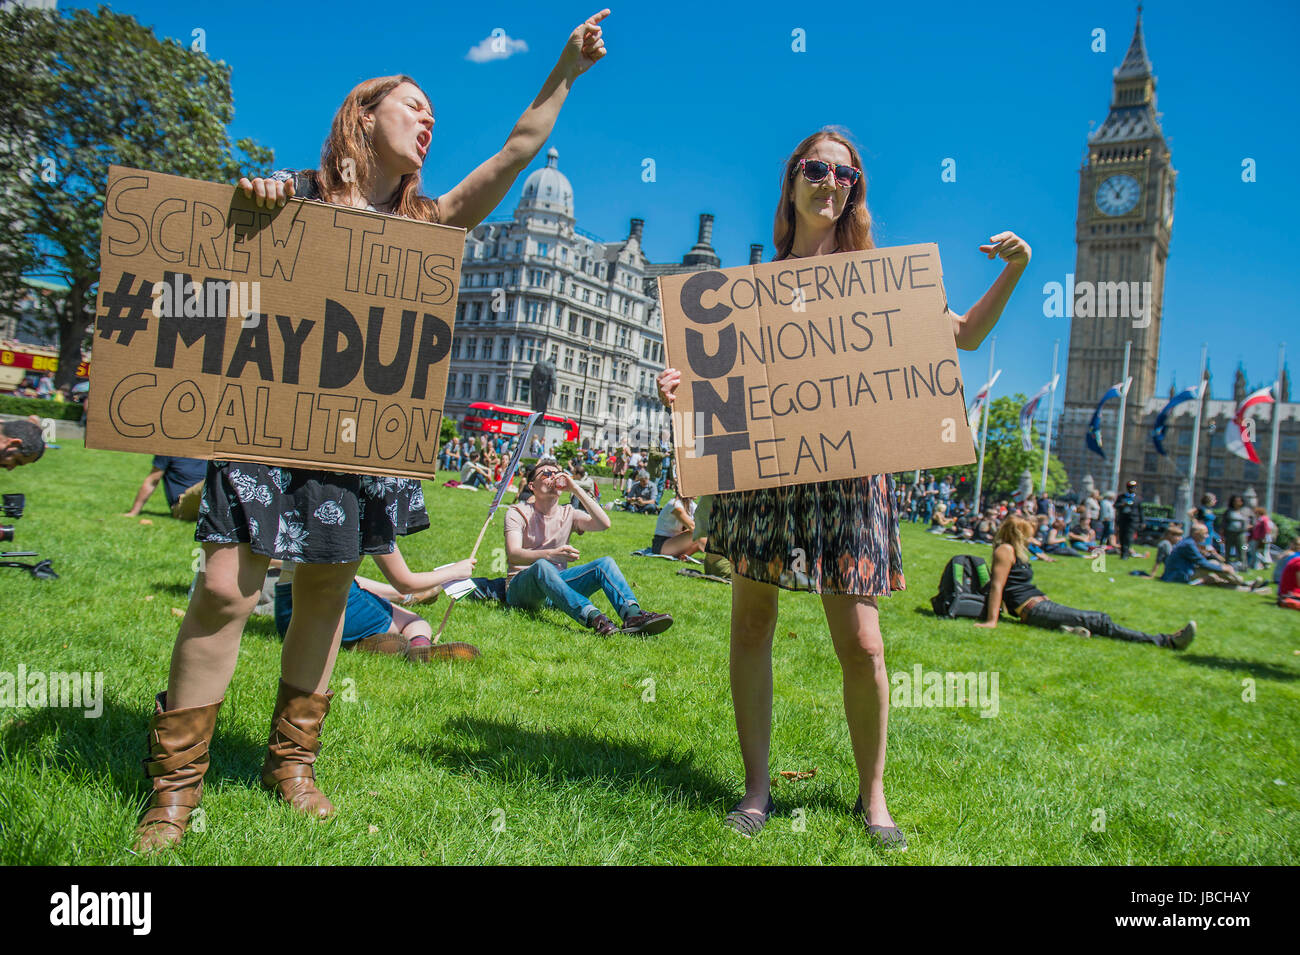 London, UK. 10th June, 2017. A day after the election result protestors gather to ask for Theresa May to quit and - Stock Image